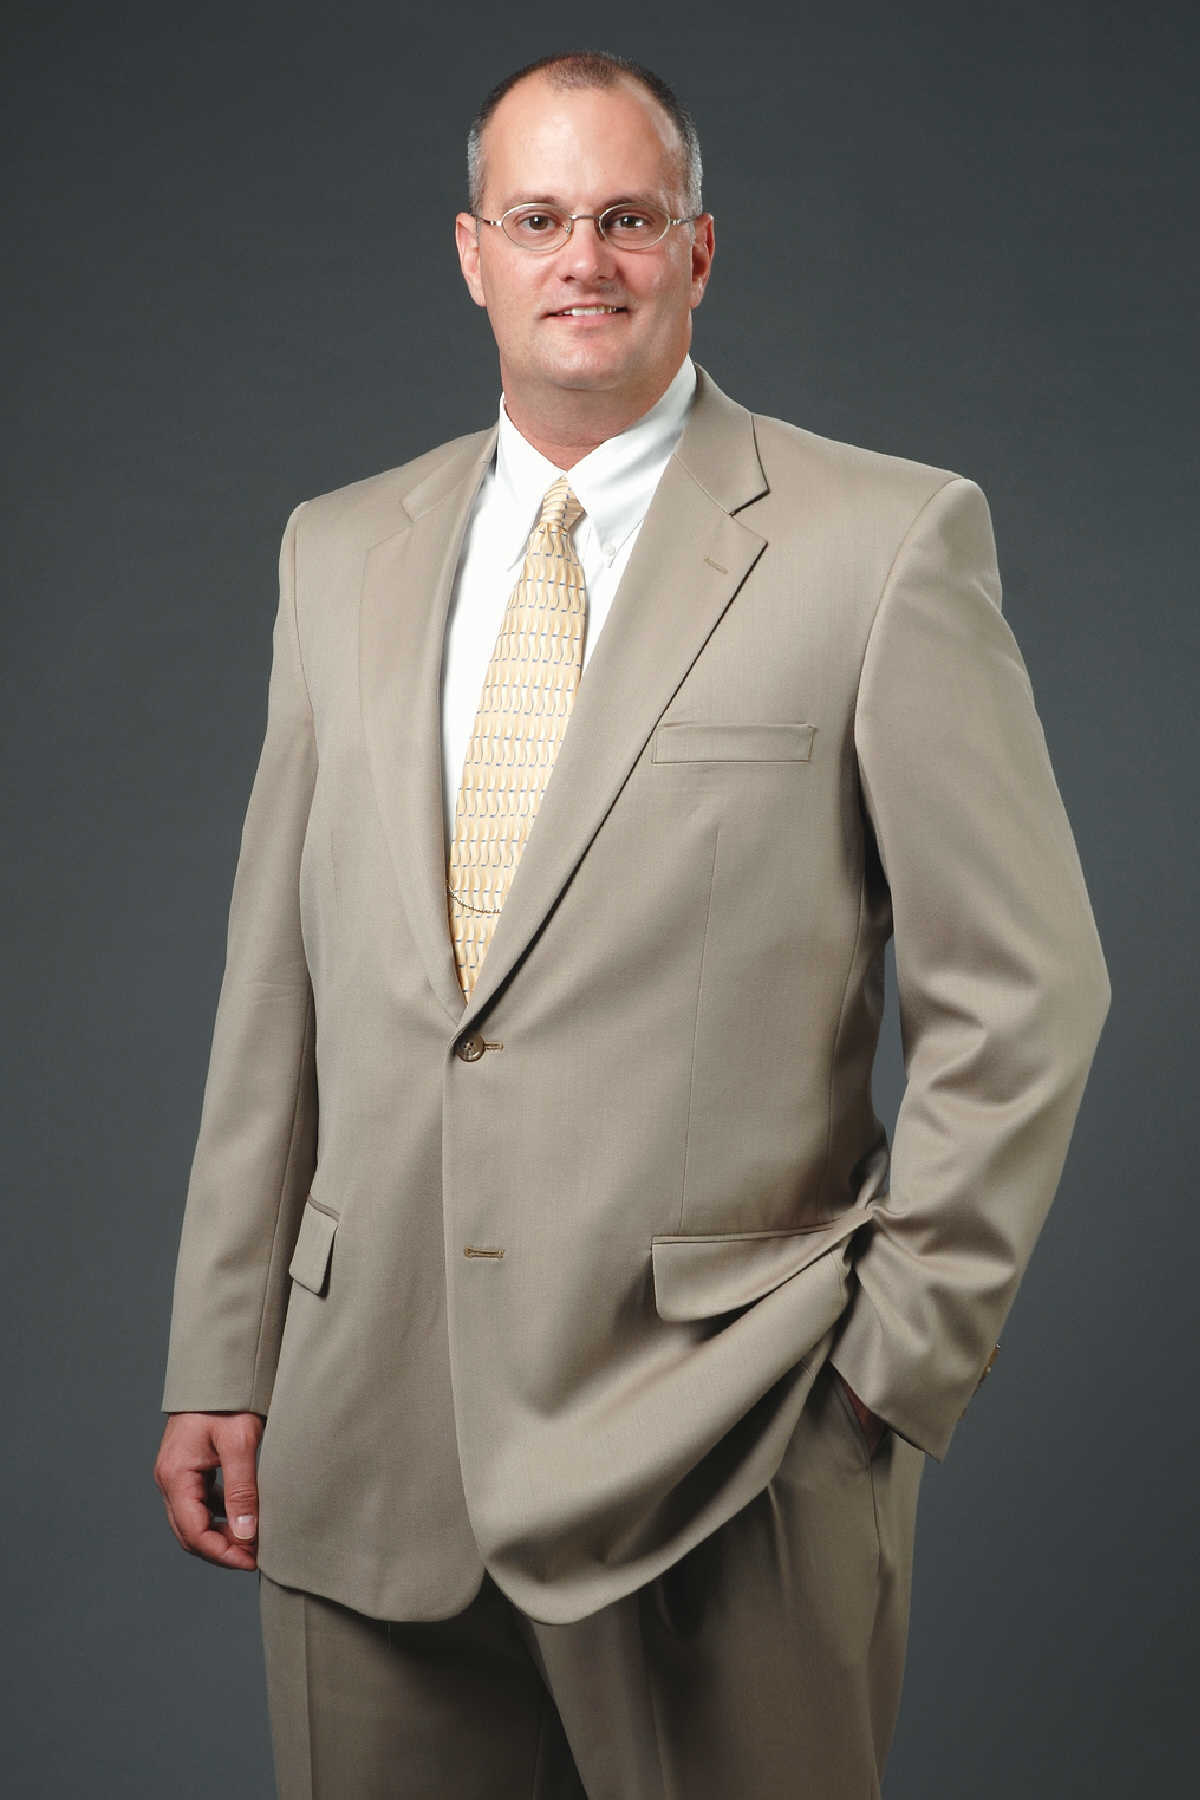 Joe Hayden, Realtor